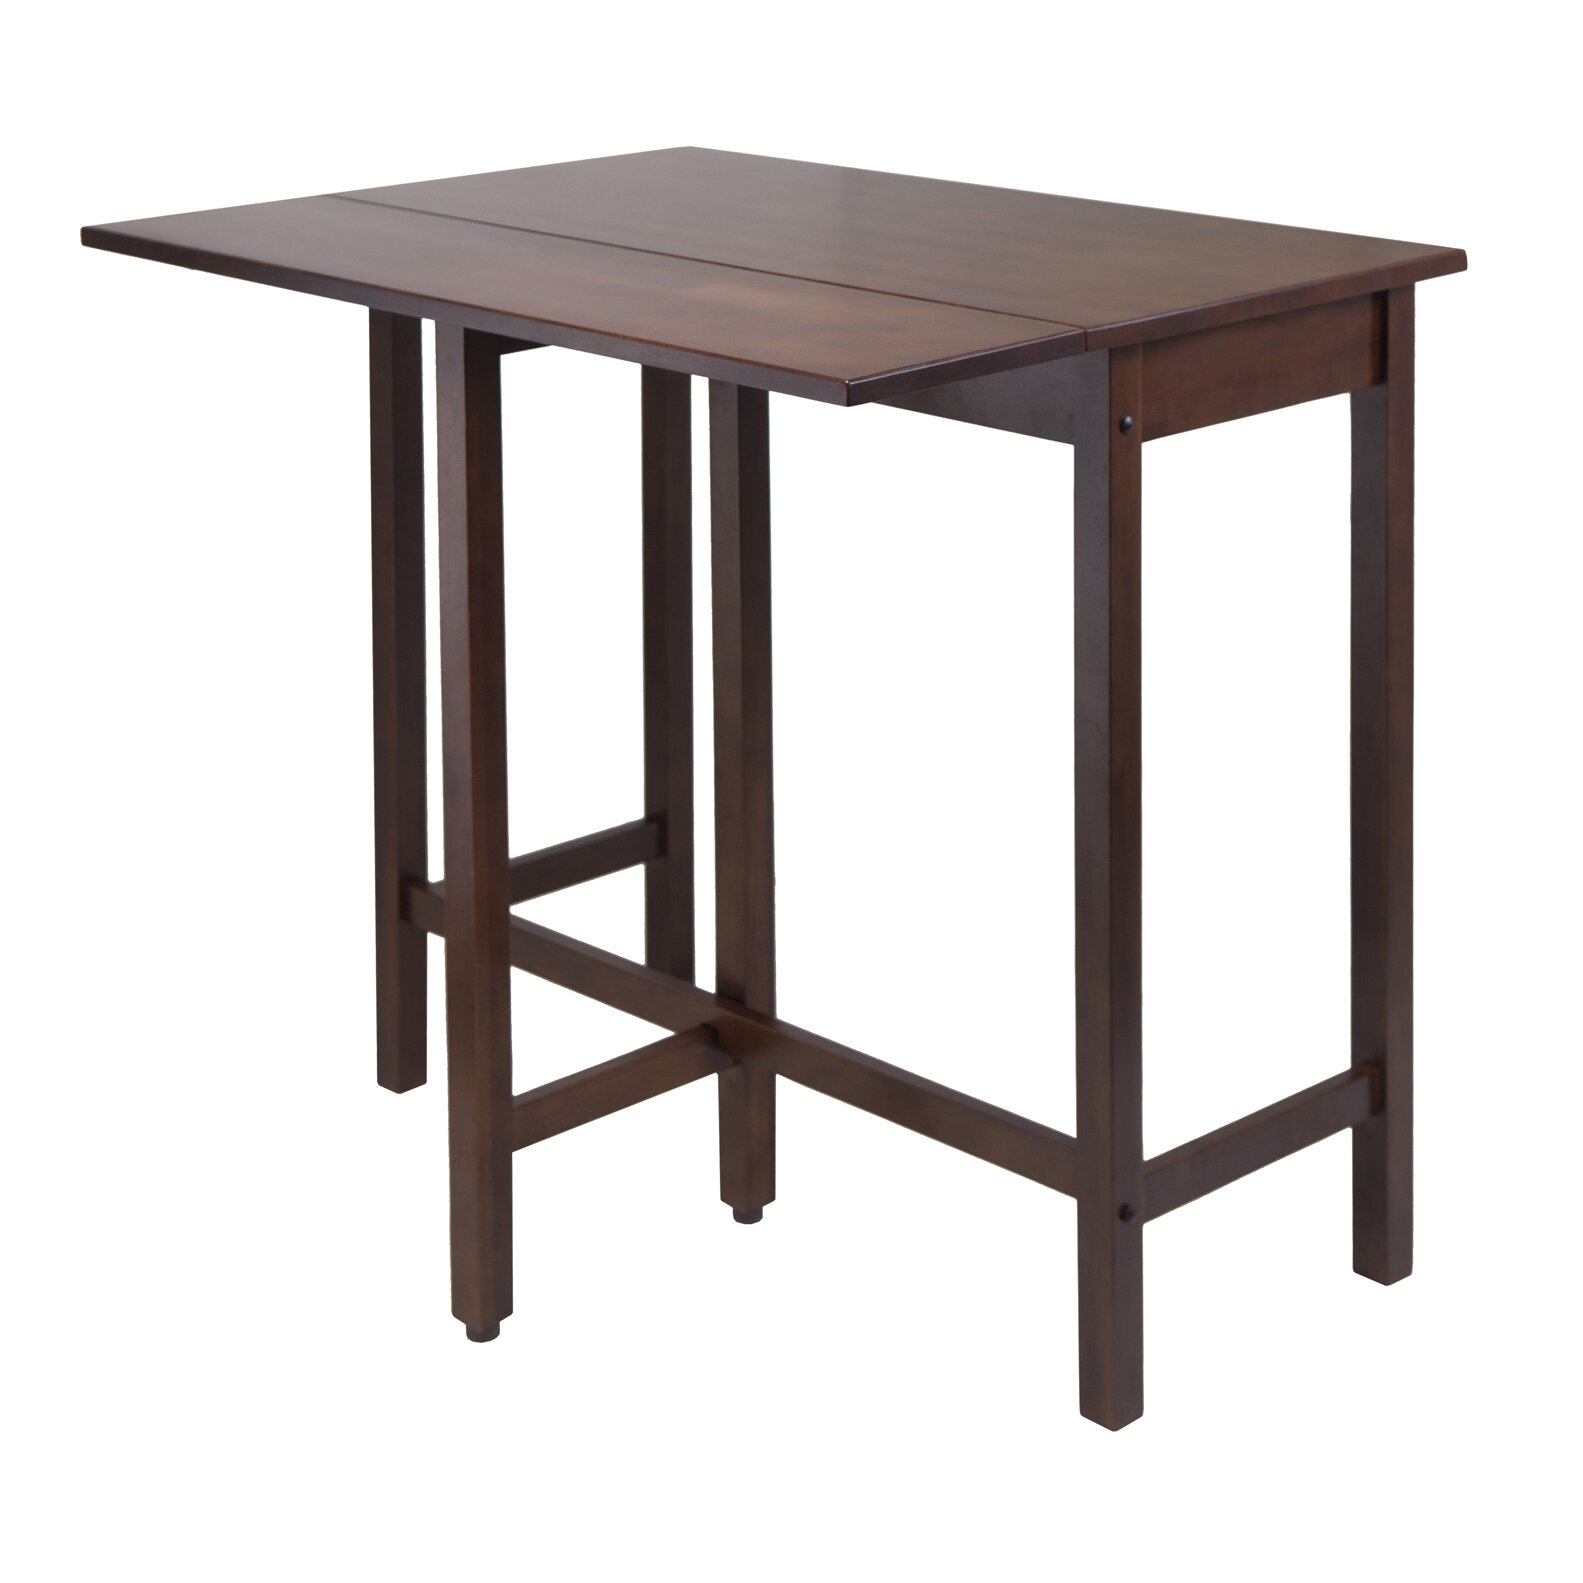 Winsome lynnwood counter height extendable dining table for Wayfair dining table